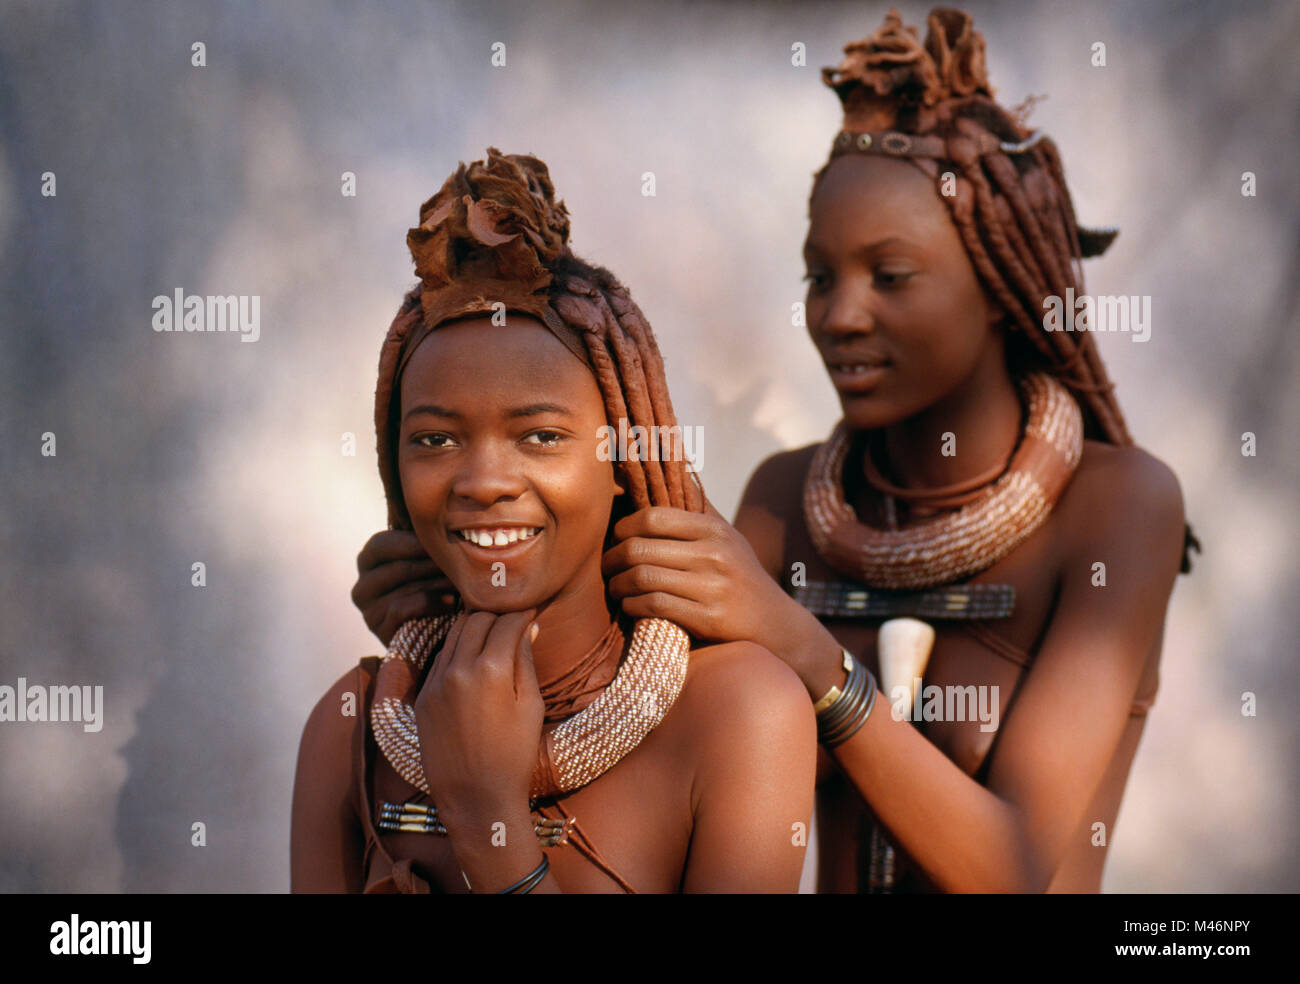 Namibia. Kaokoveld, near Opuwo. Himba tribe. Women arranging their hair. - Stock Image